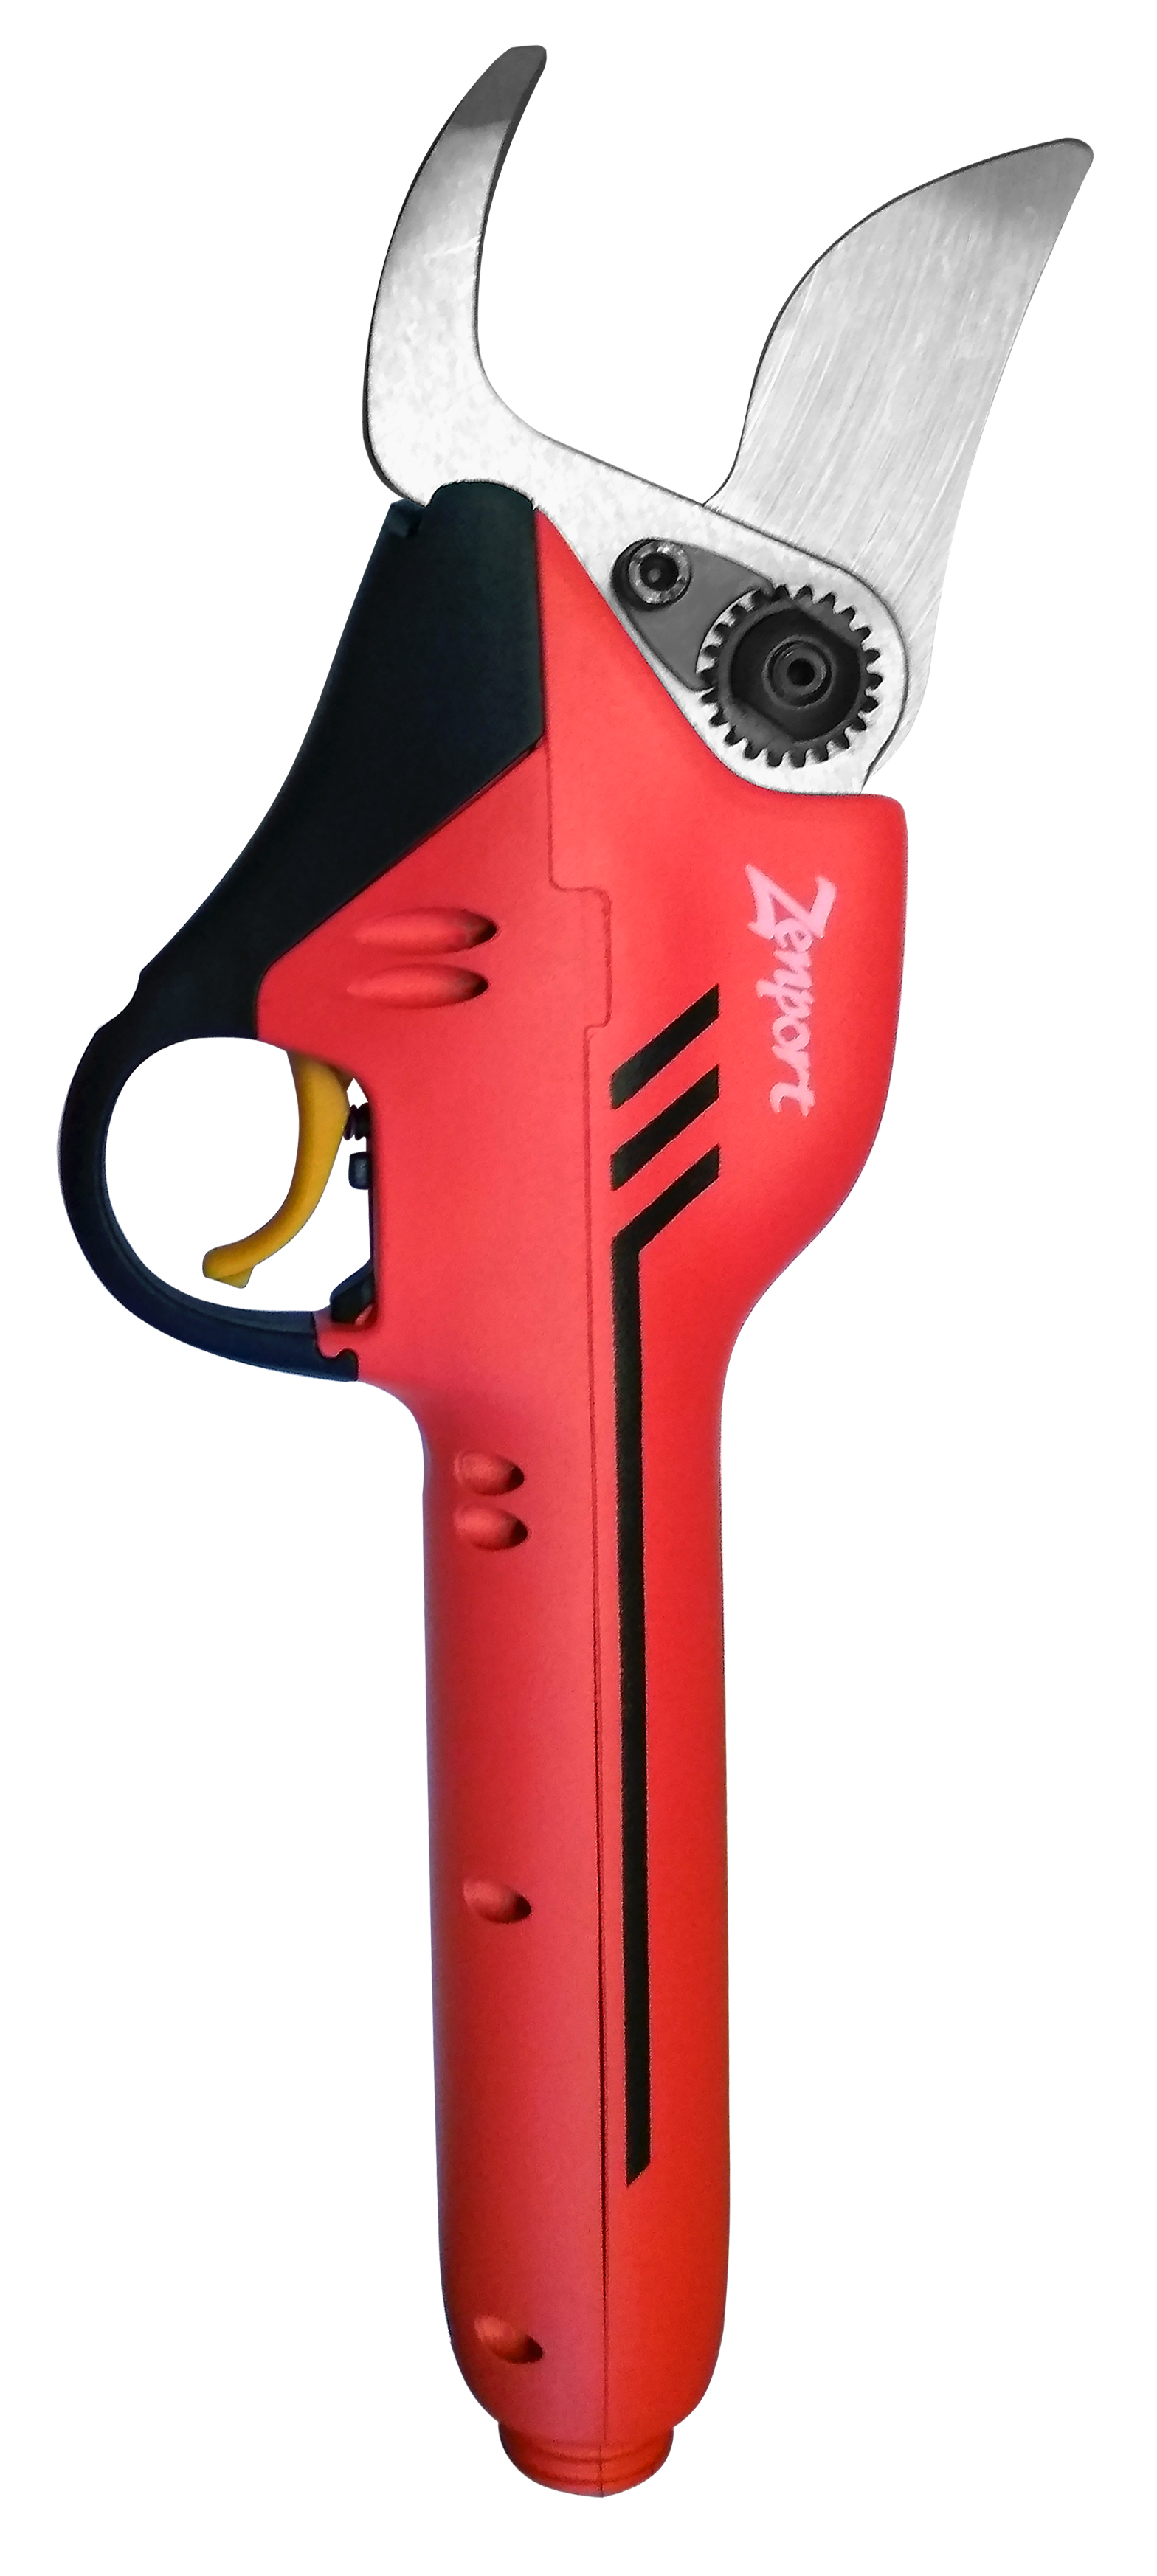 ePruner EP4-868 Large Battery Powered Electric Pruner, 12-Hour, 1.5 Inch Cut, 6-PIN